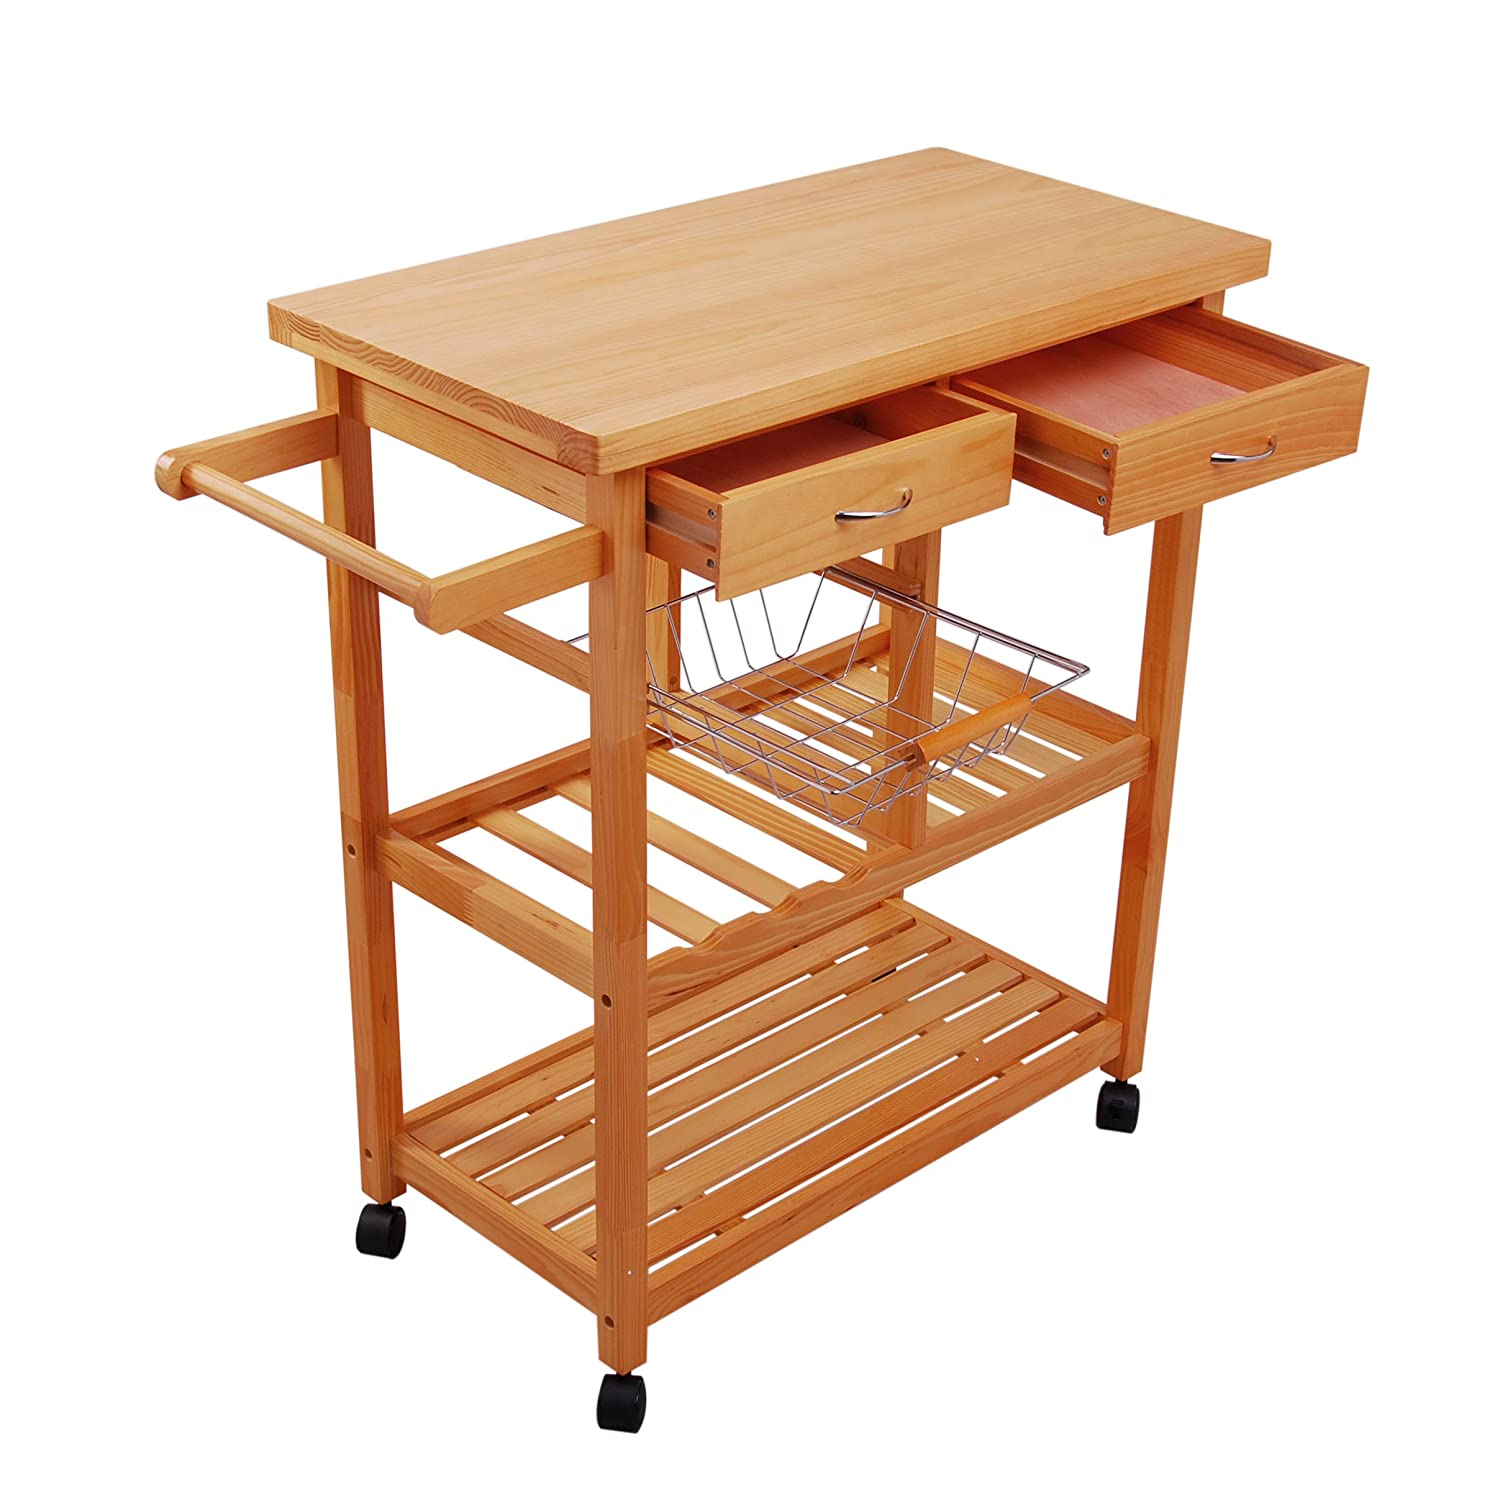 HOMCOM Rolling Kitchen Trolley Portable Kitchen Serving Cart with Drawers Basket and Shelves Aosom Canada